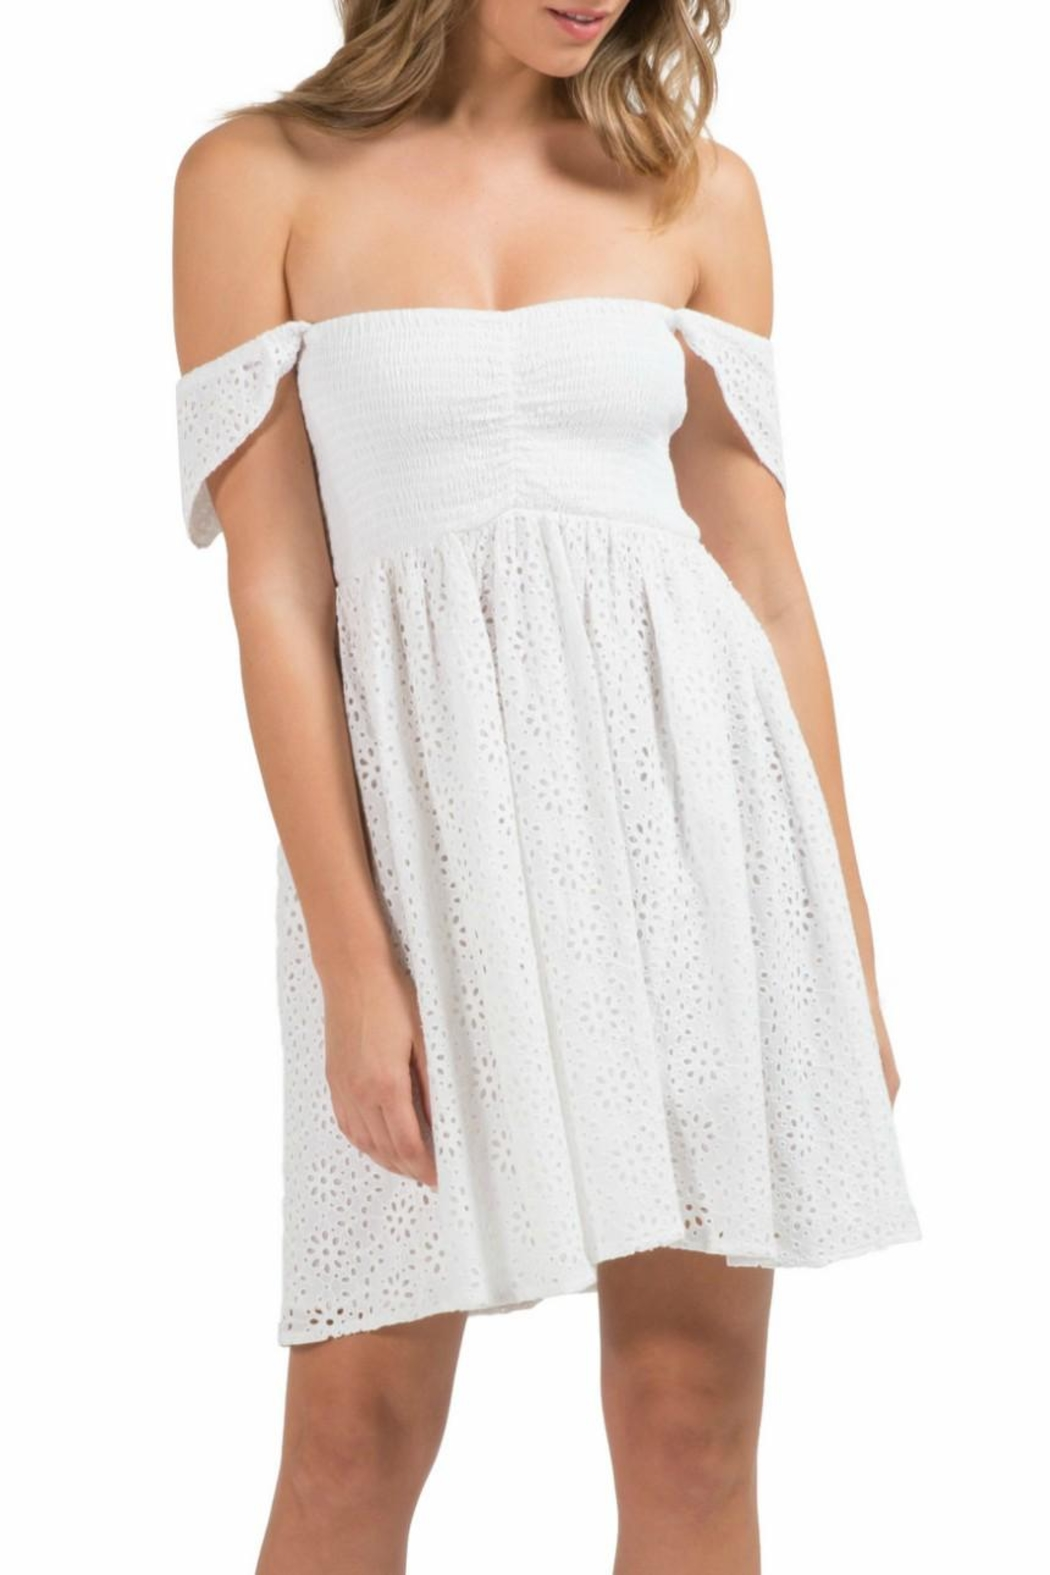 5d0f65530f Elan Drop Sleeve Dress from Westhampton Beach by Chic — Shoptiques